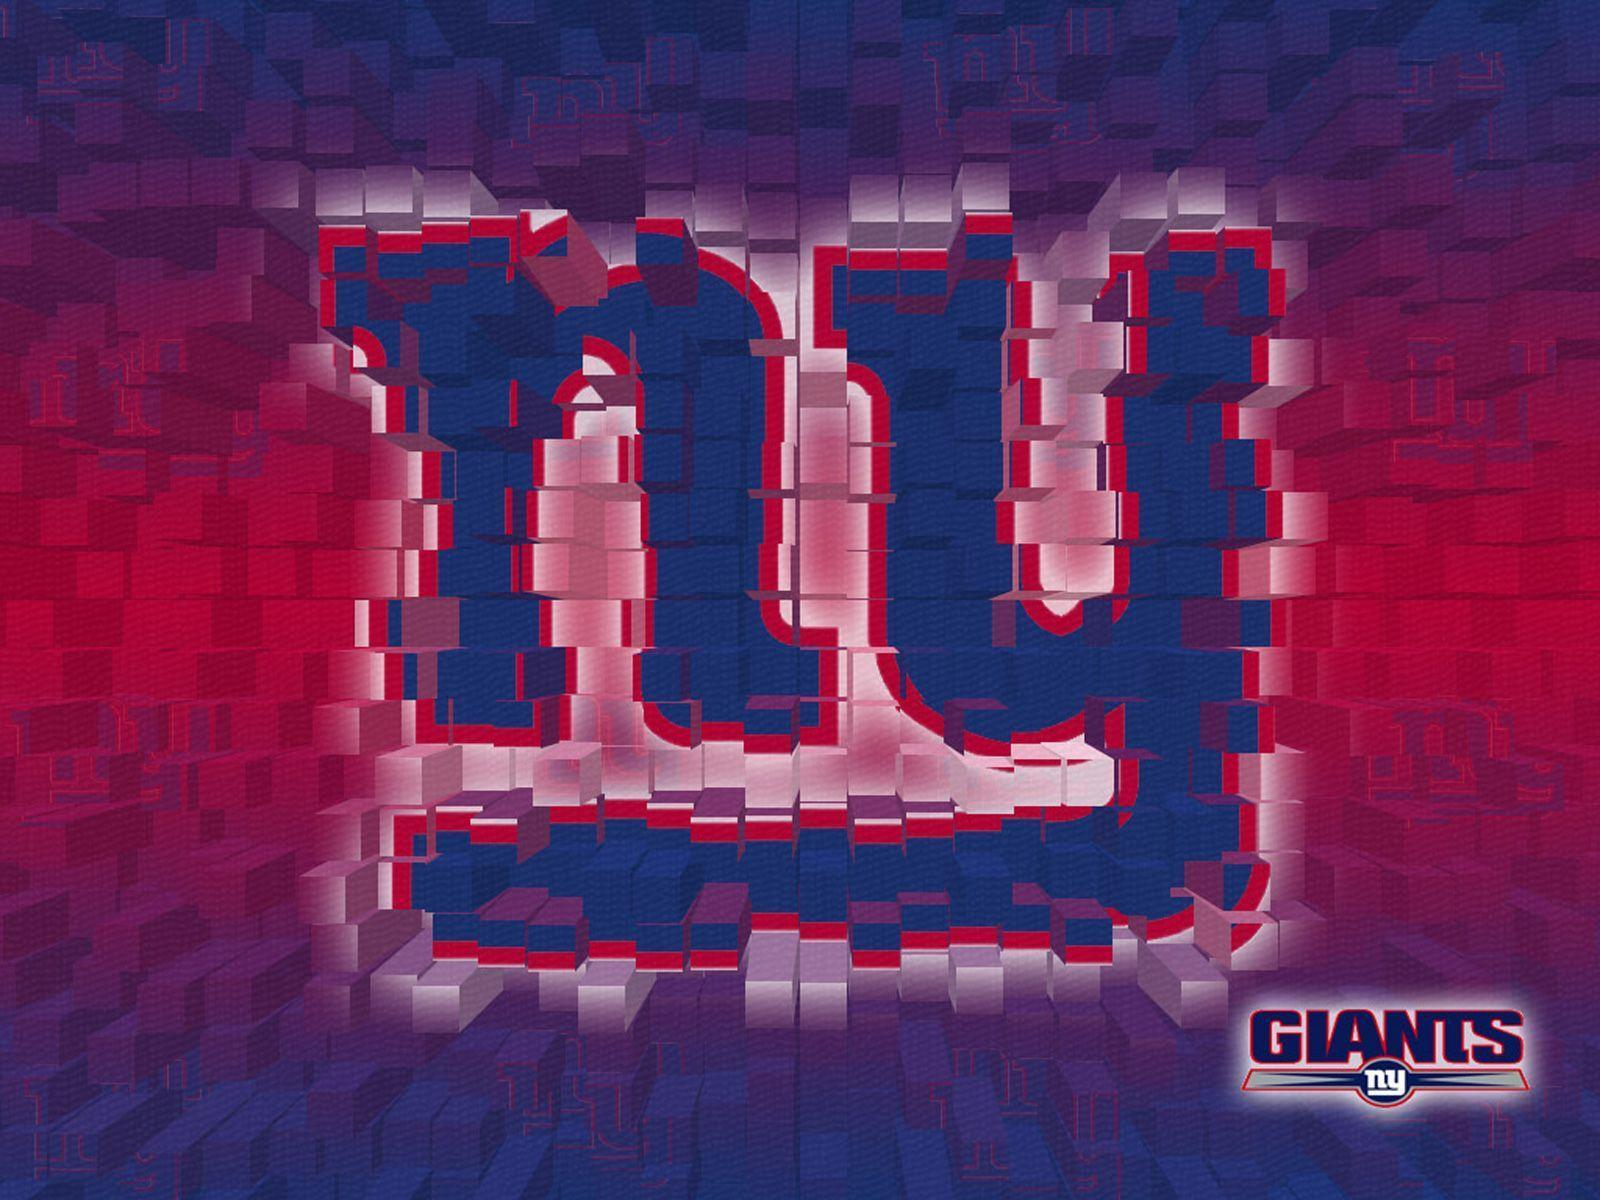 More New York Giants Wallpapers